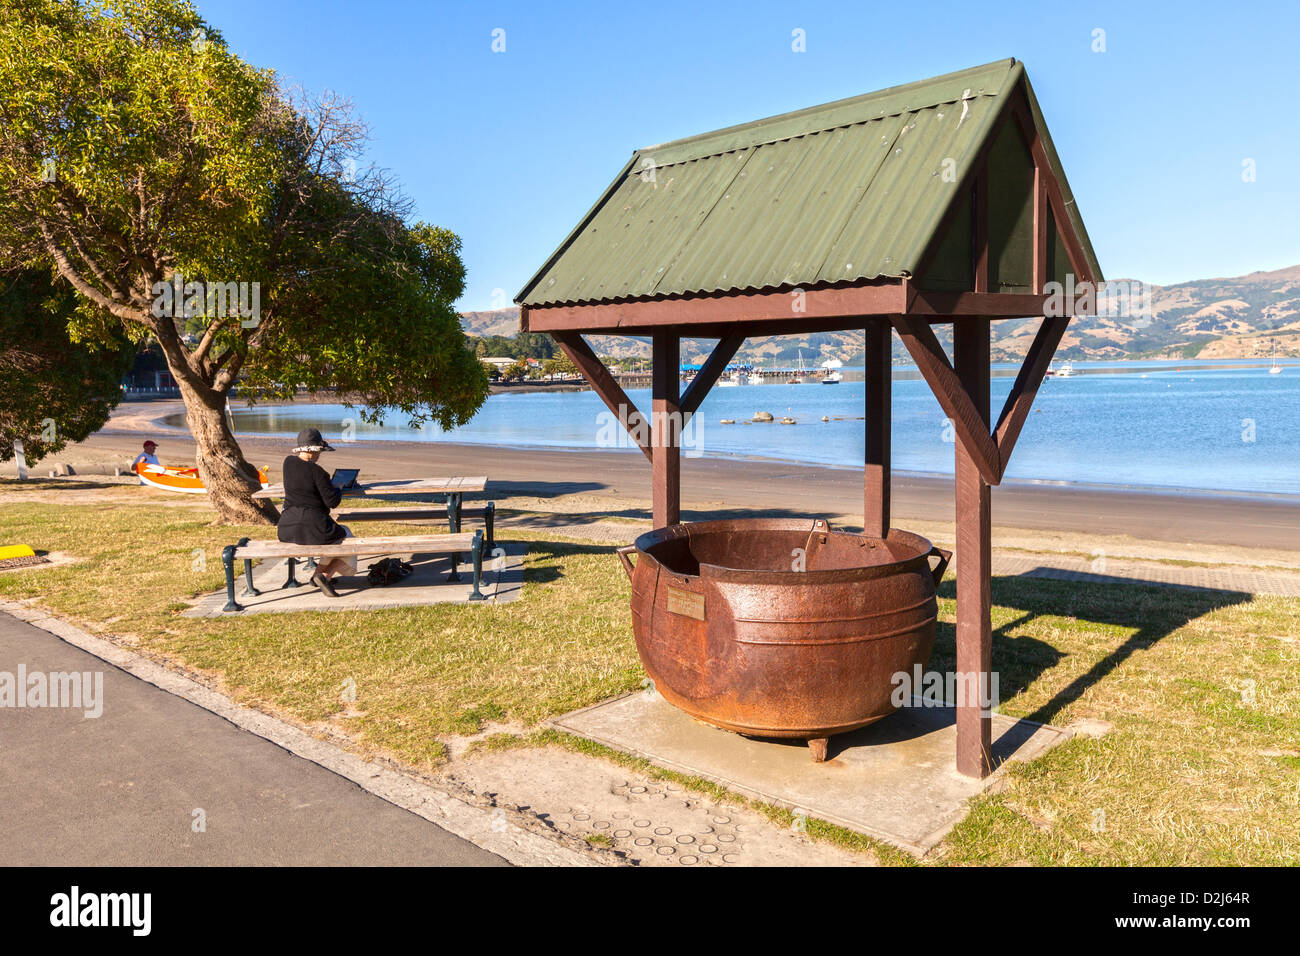 A try pot, relic of Akaroa's days as a whaling station, on the waterfront of the harbour. Woman sitting on bench - Stock Image